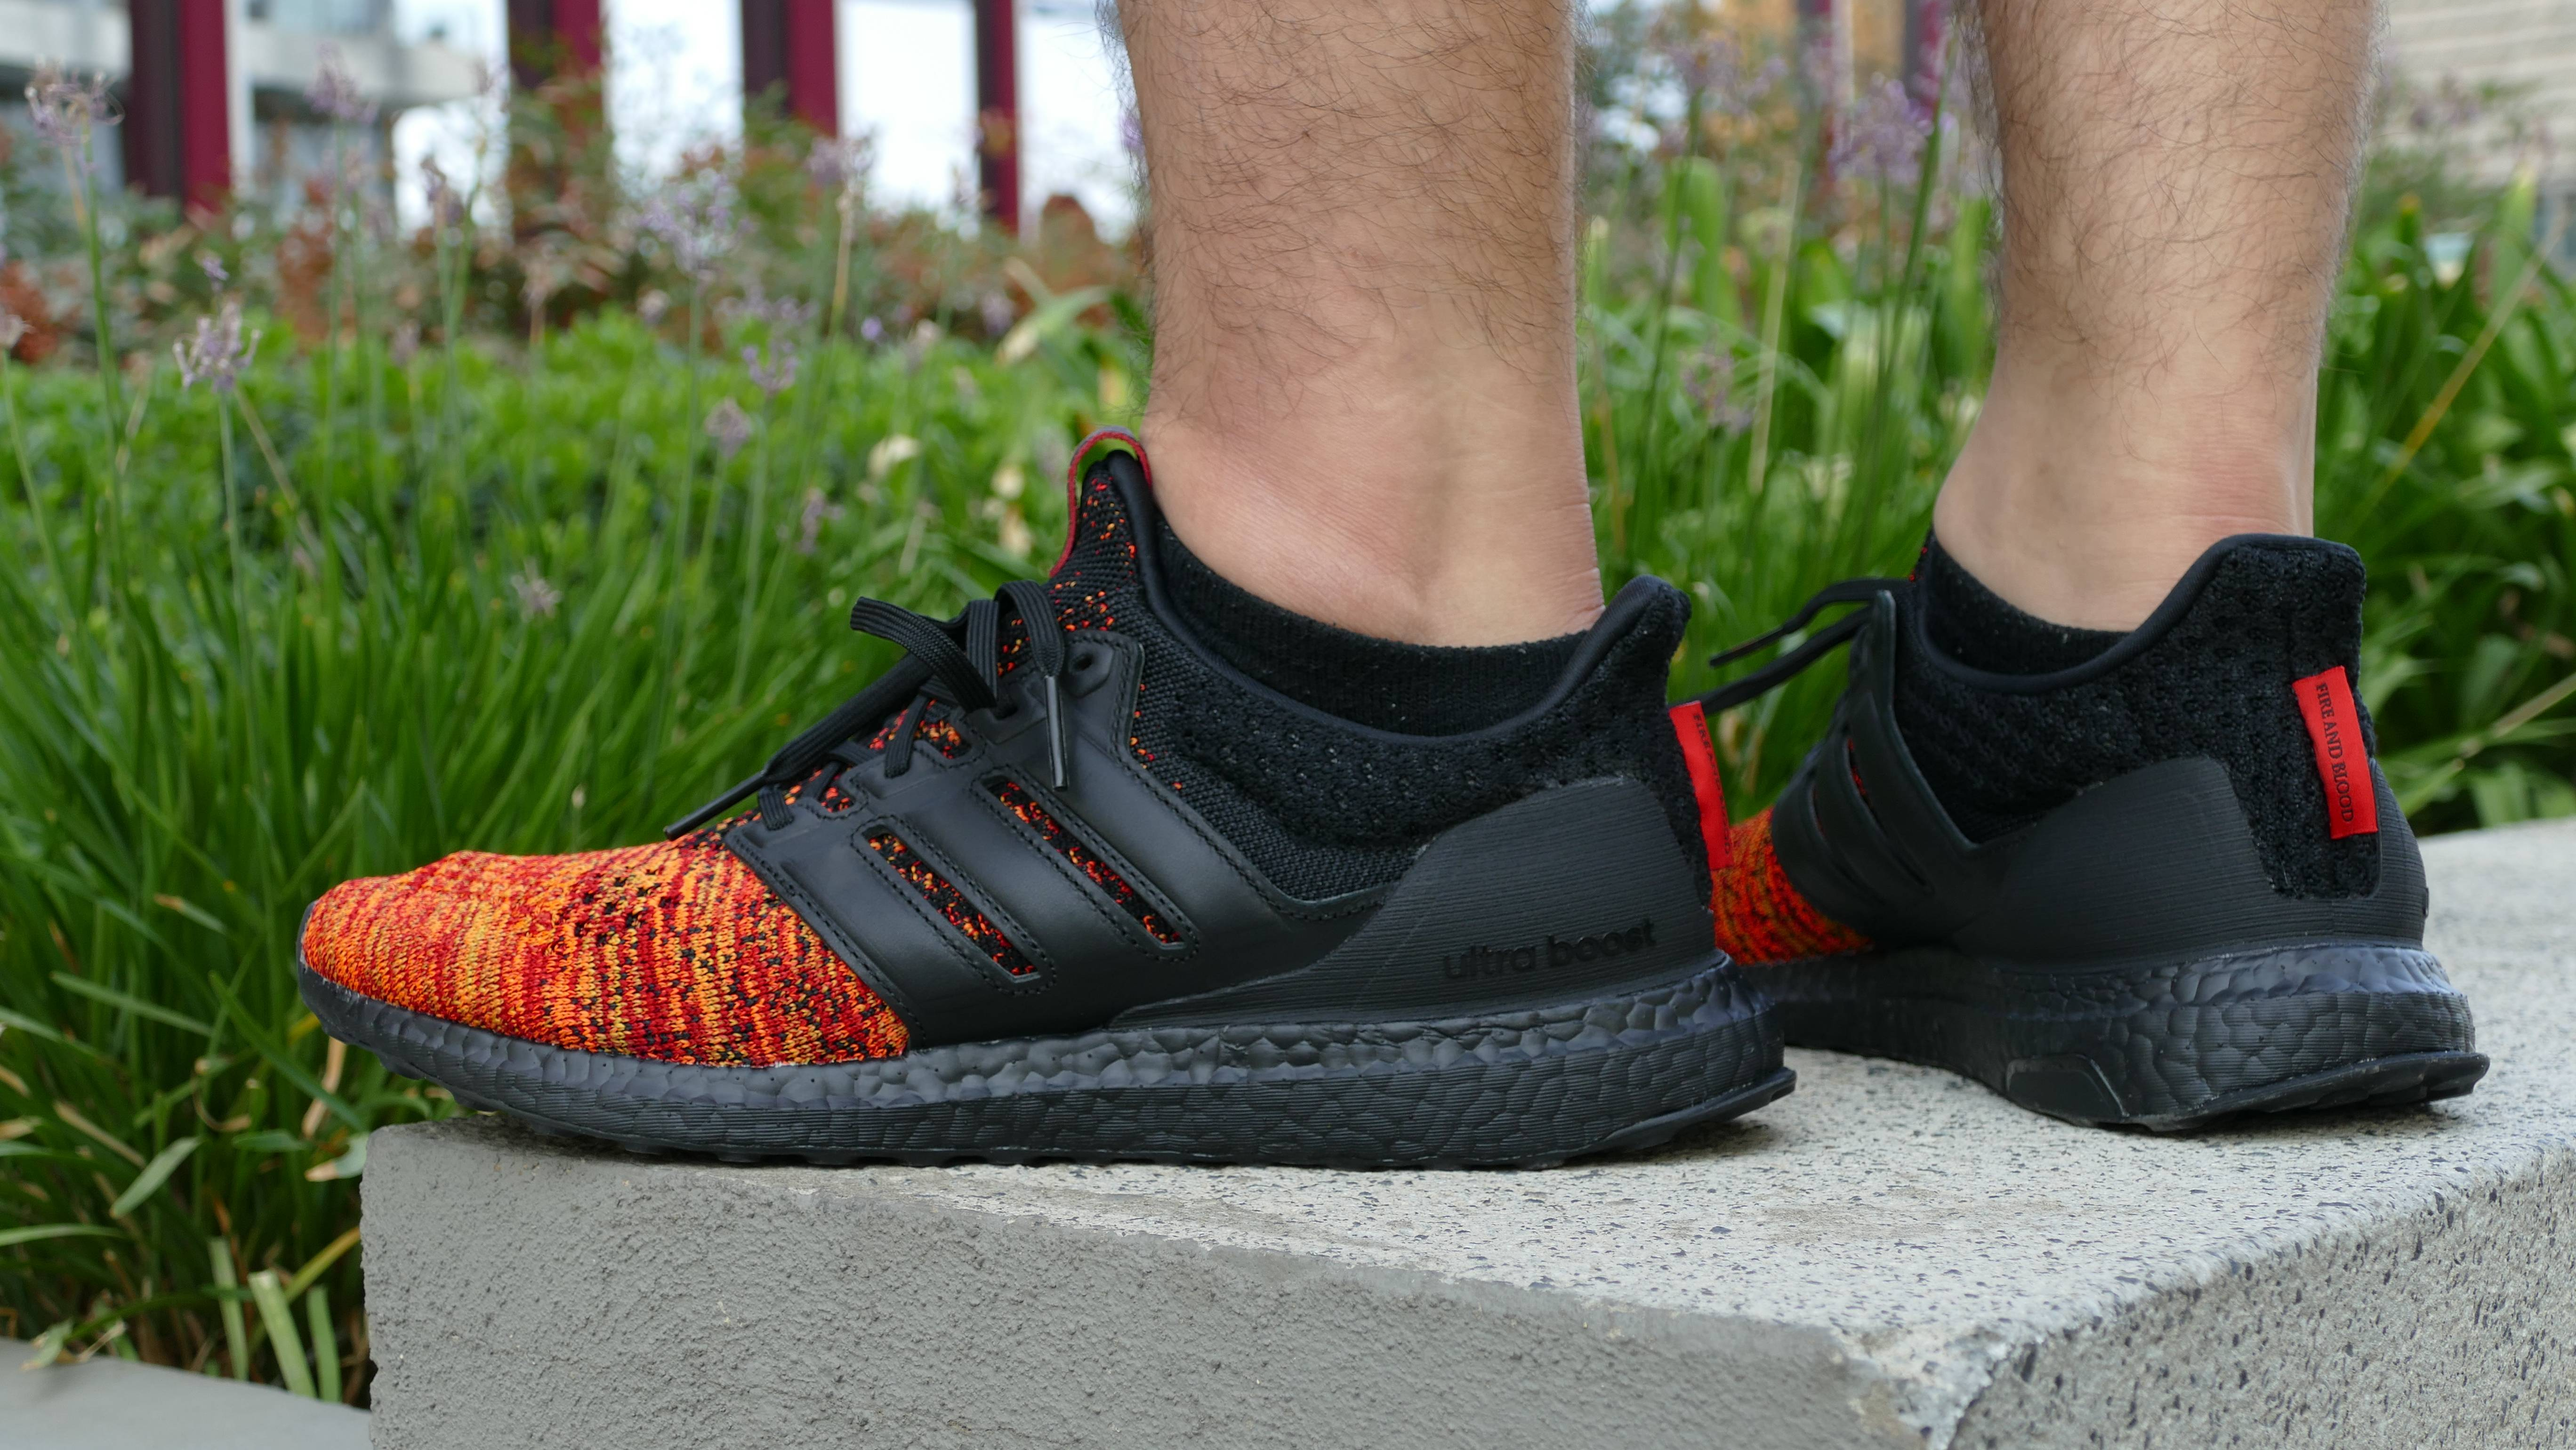 Adidas Ultraboost GOT Game of Thrones